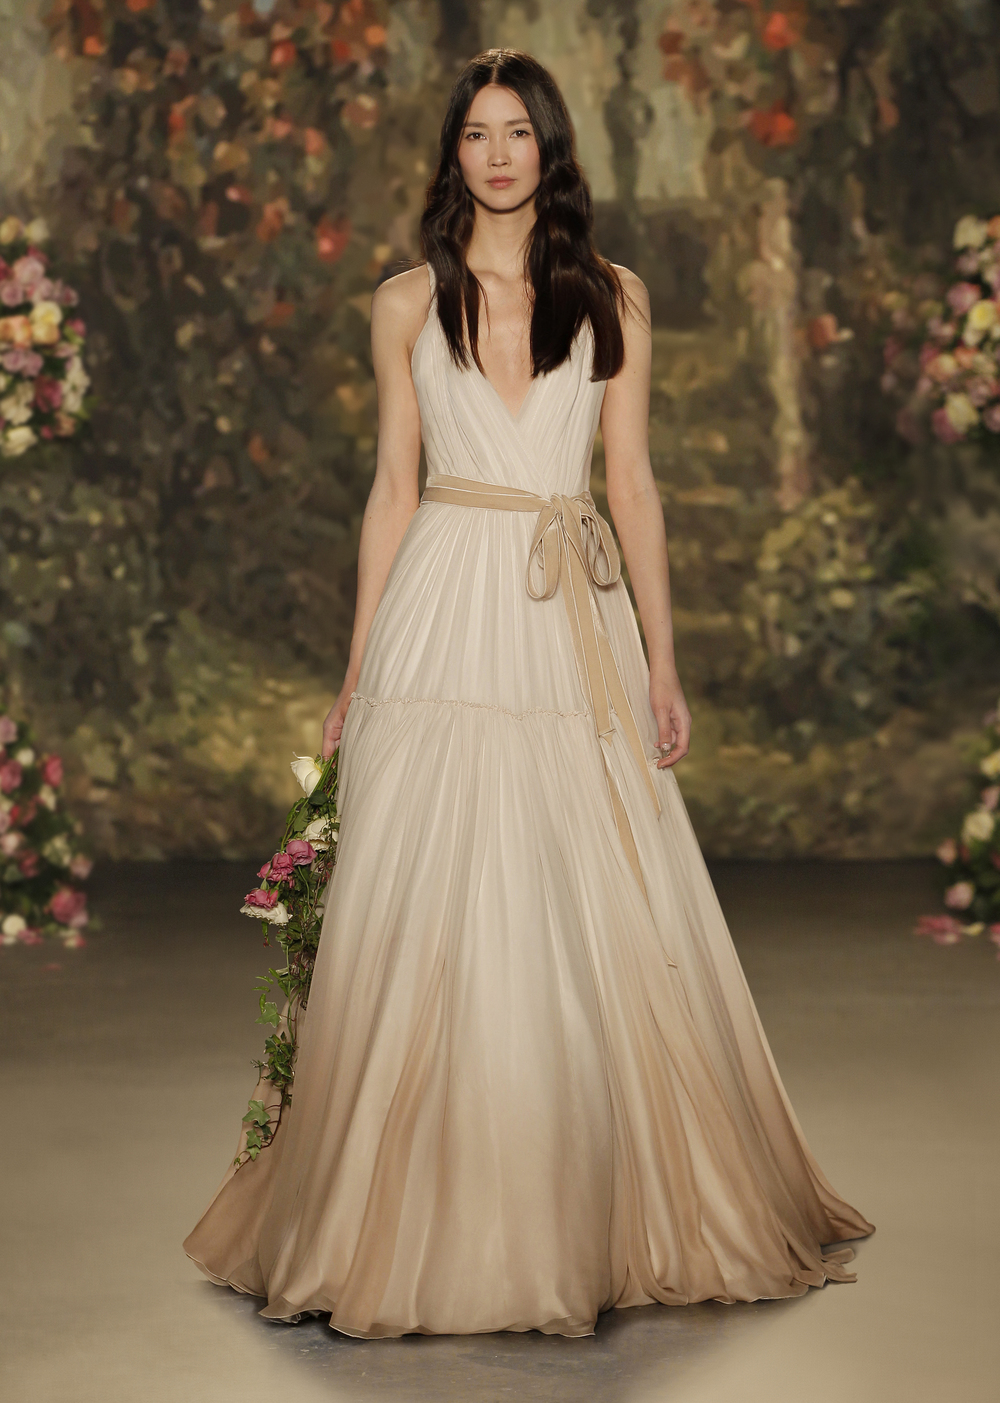 Cressida by Jenny Packham